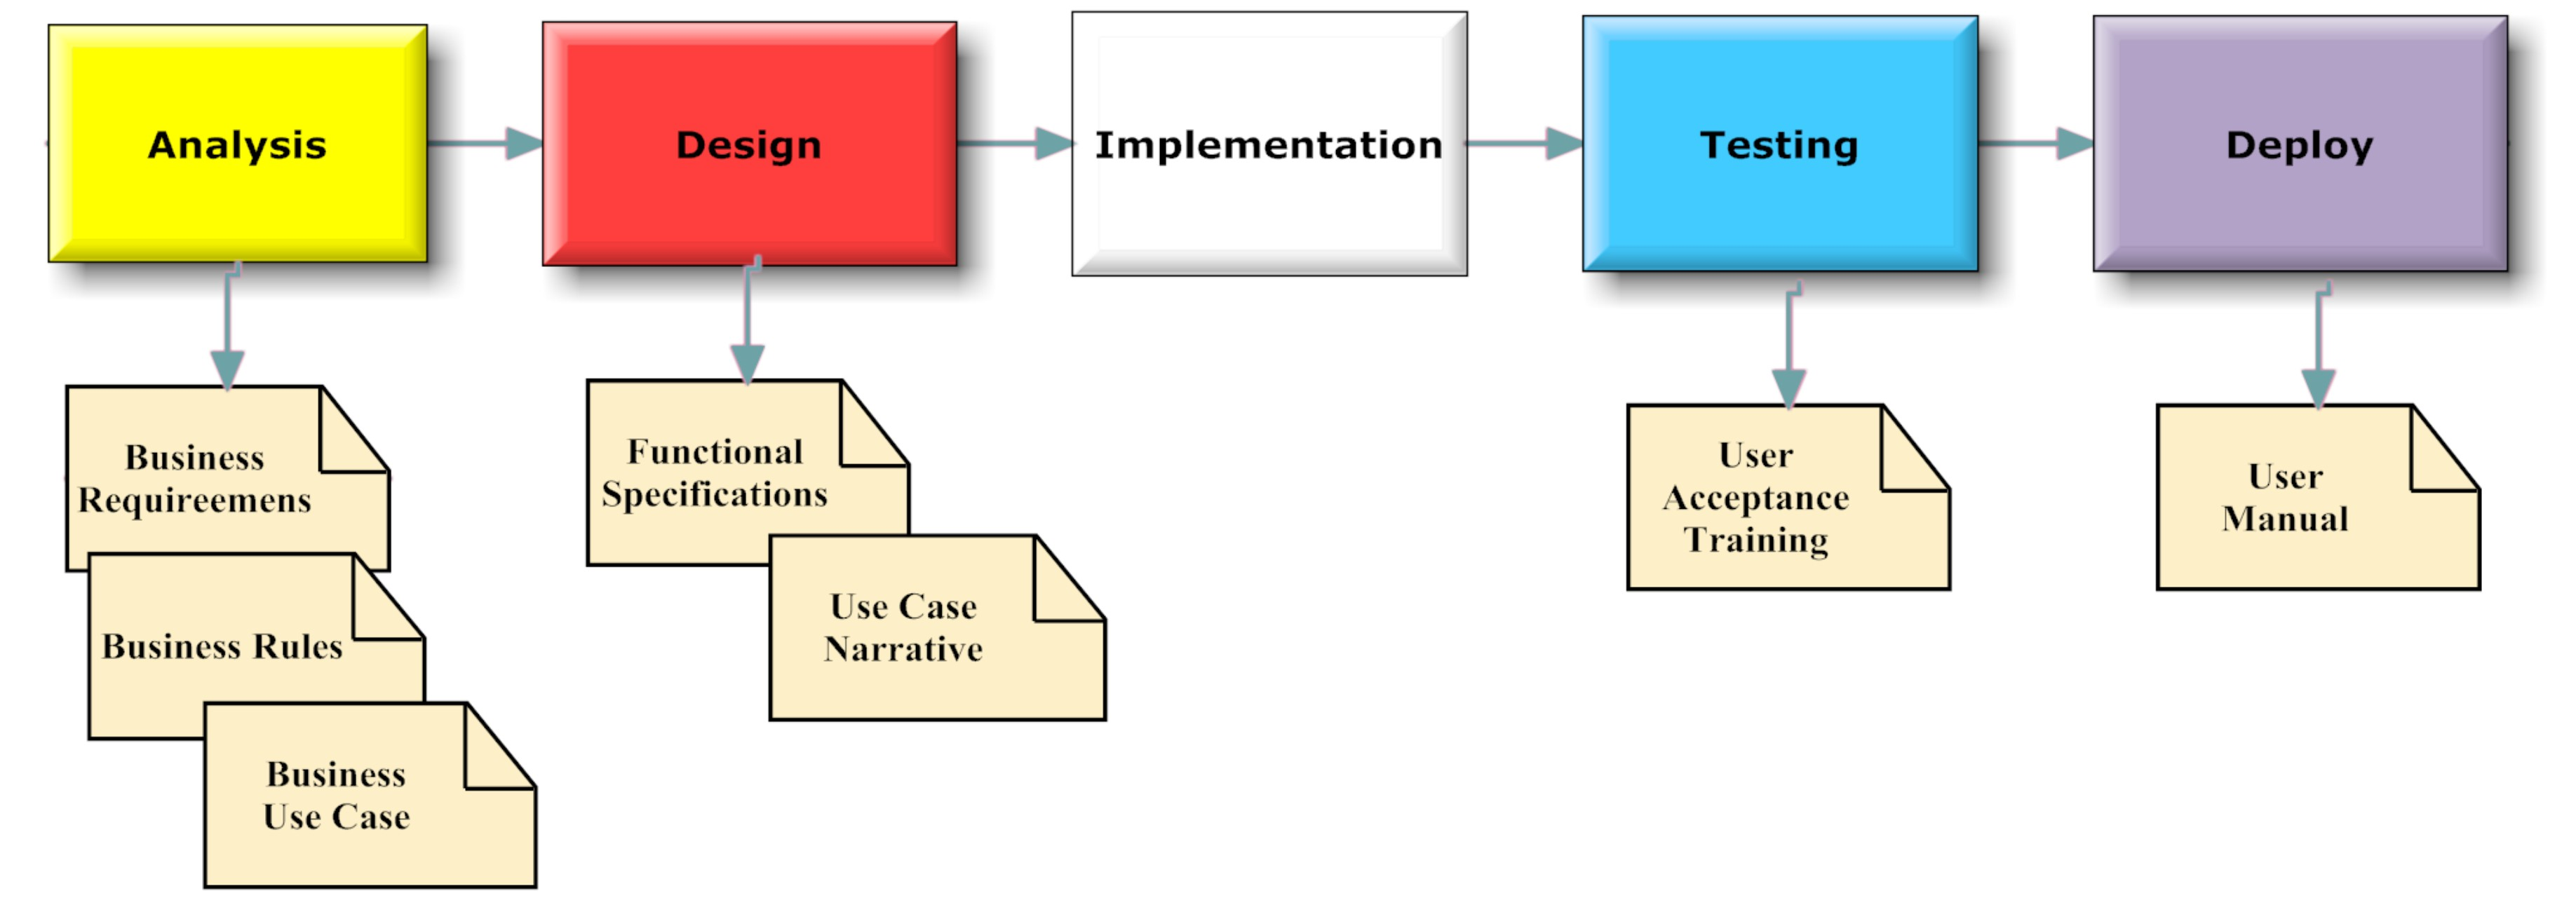 Business Process And Documentation Types - Business Process Analysis